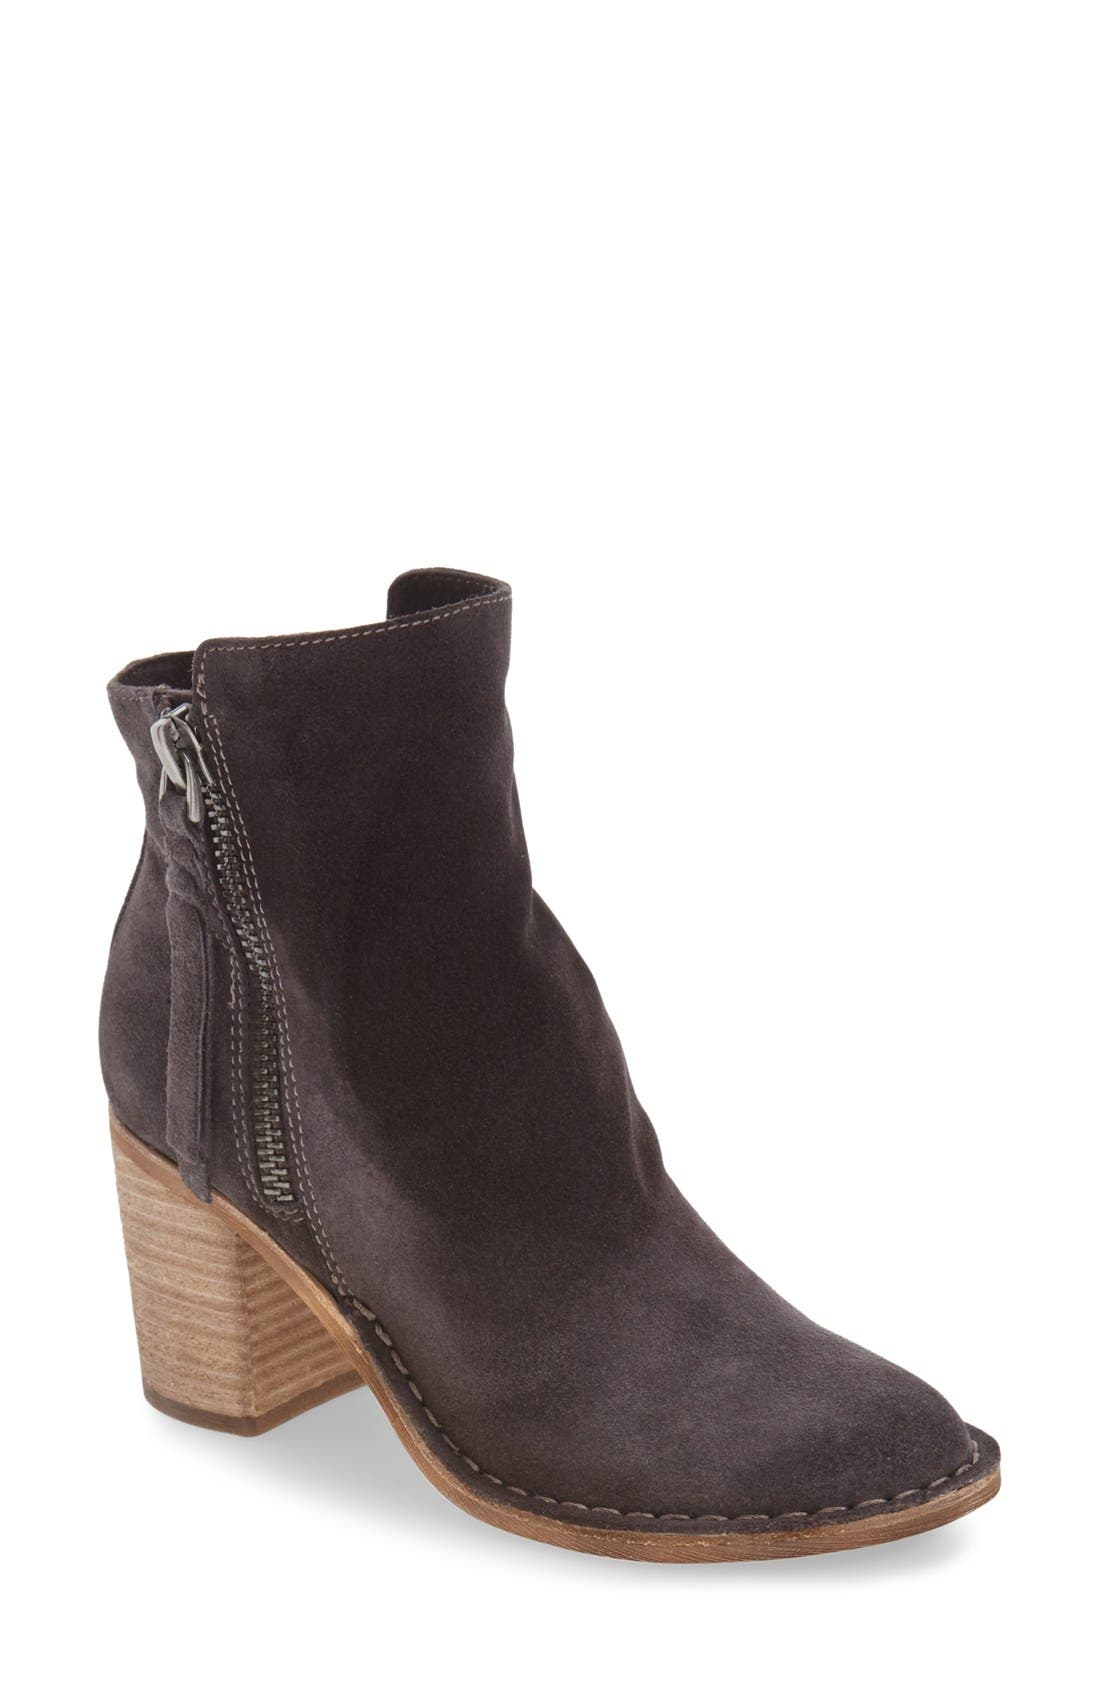 'Lana' Block Heel Bootie,                             Main thumbnail 1, color,                             Anthracite Suede